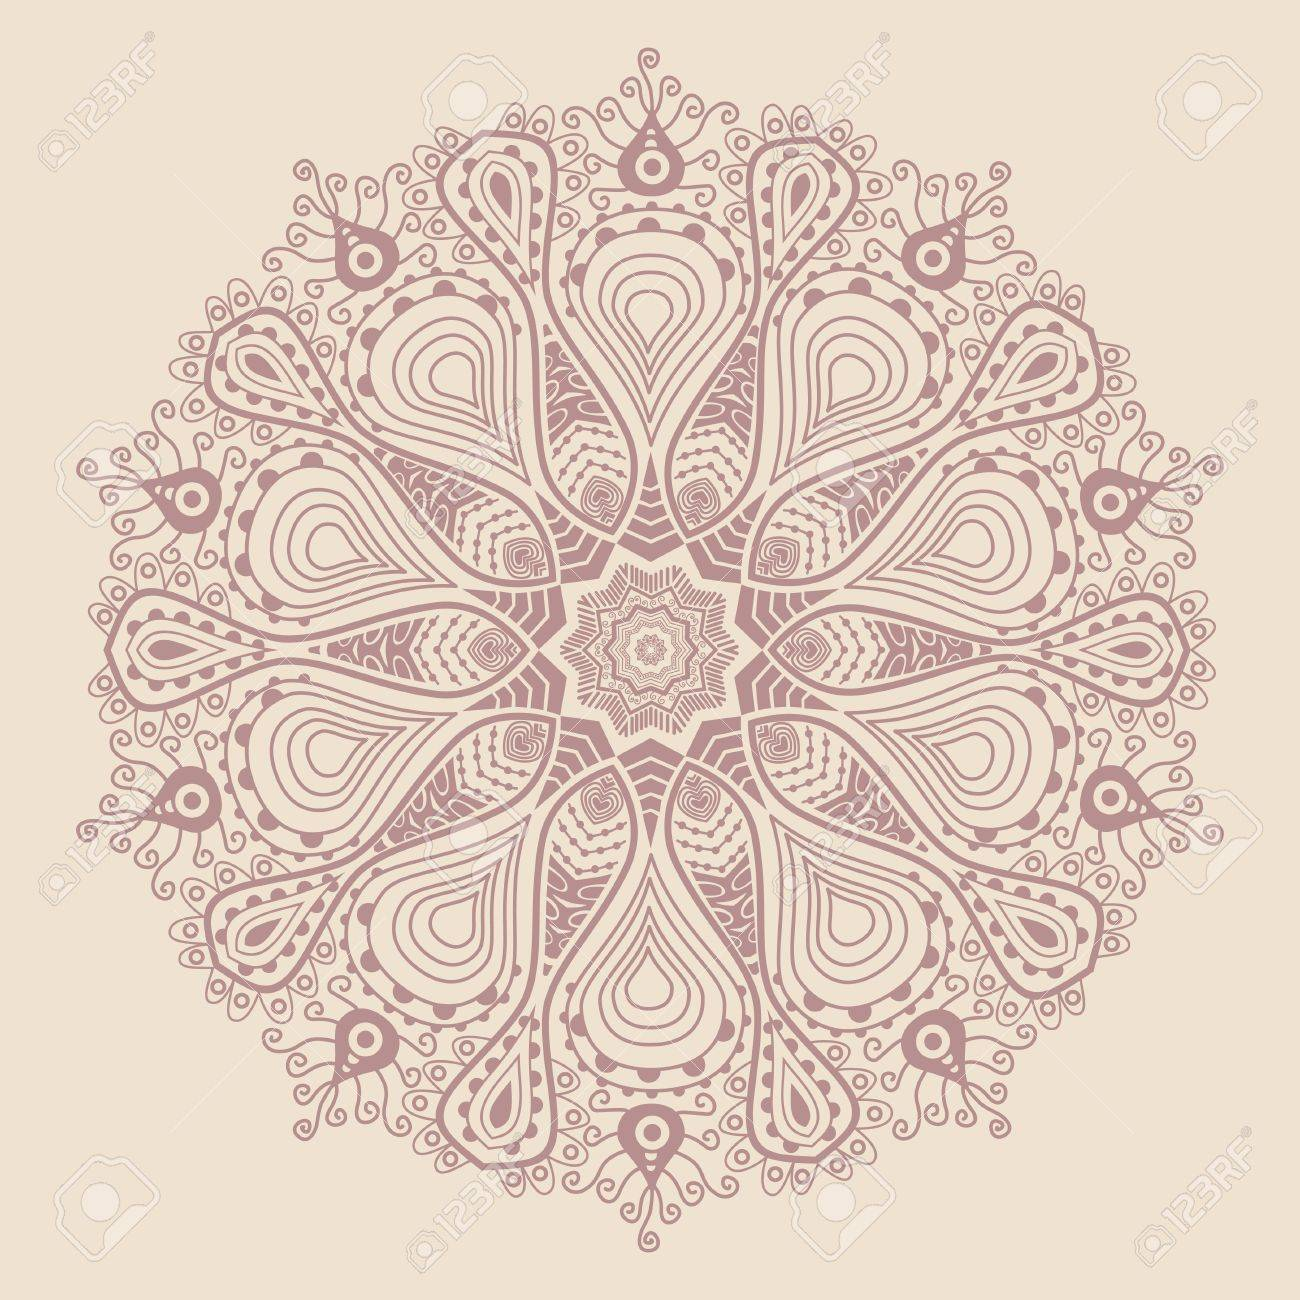 ornamental round lace pattern, circle background with many details, looks like crocheting handmade lace Stock Vector - 15443384